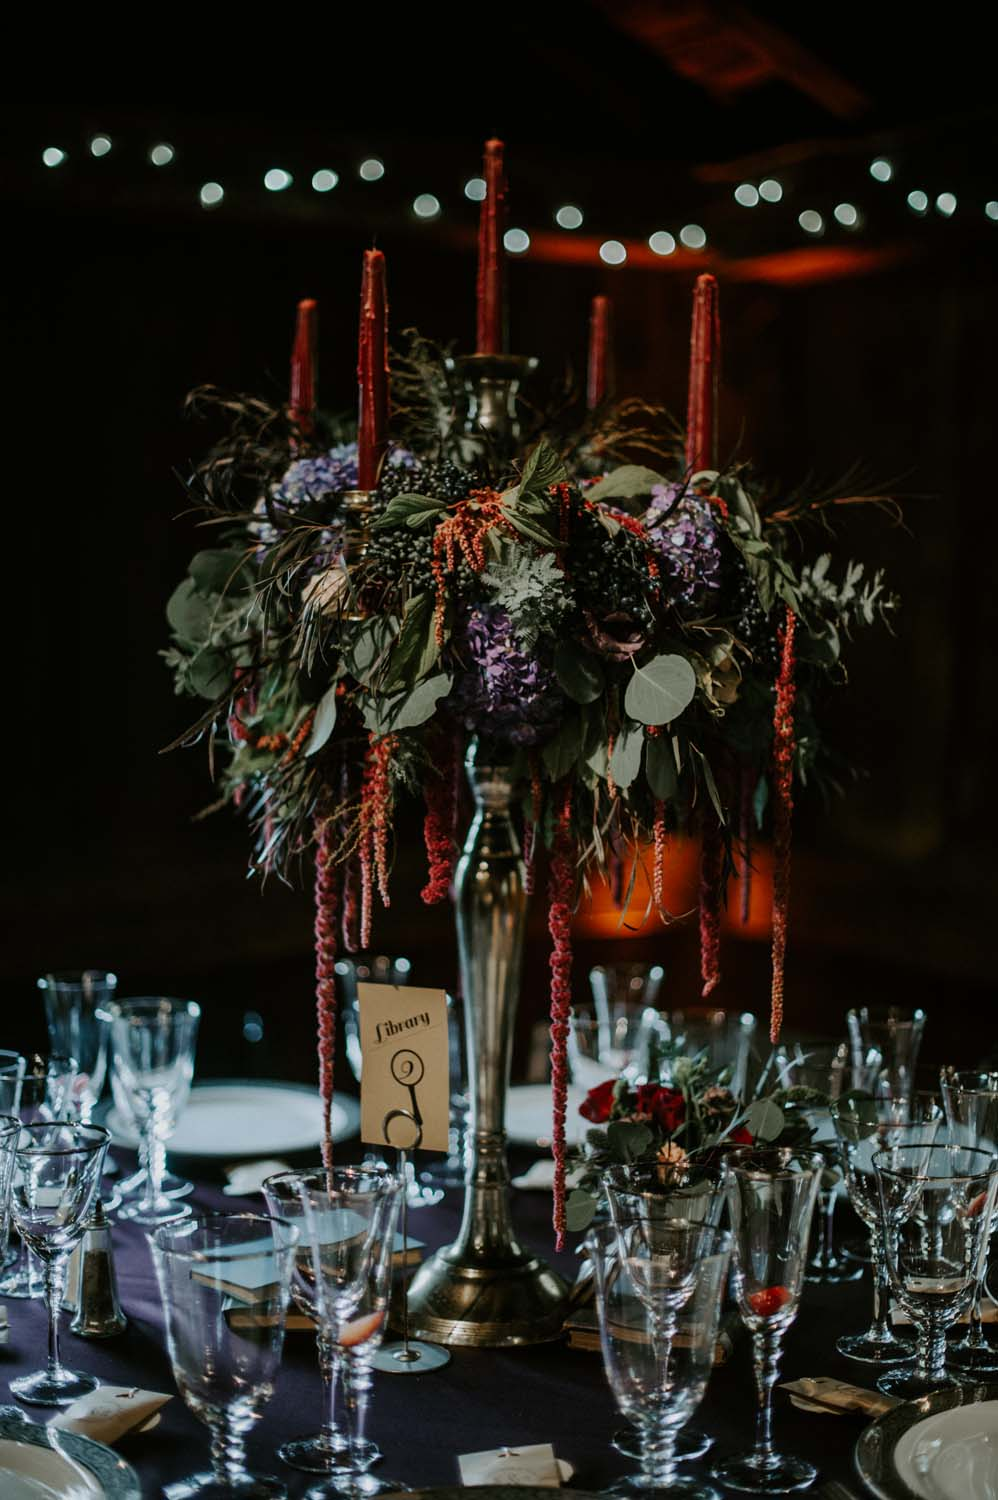 darkly-romantic-wedding-flowers-candis-floral-creations_10